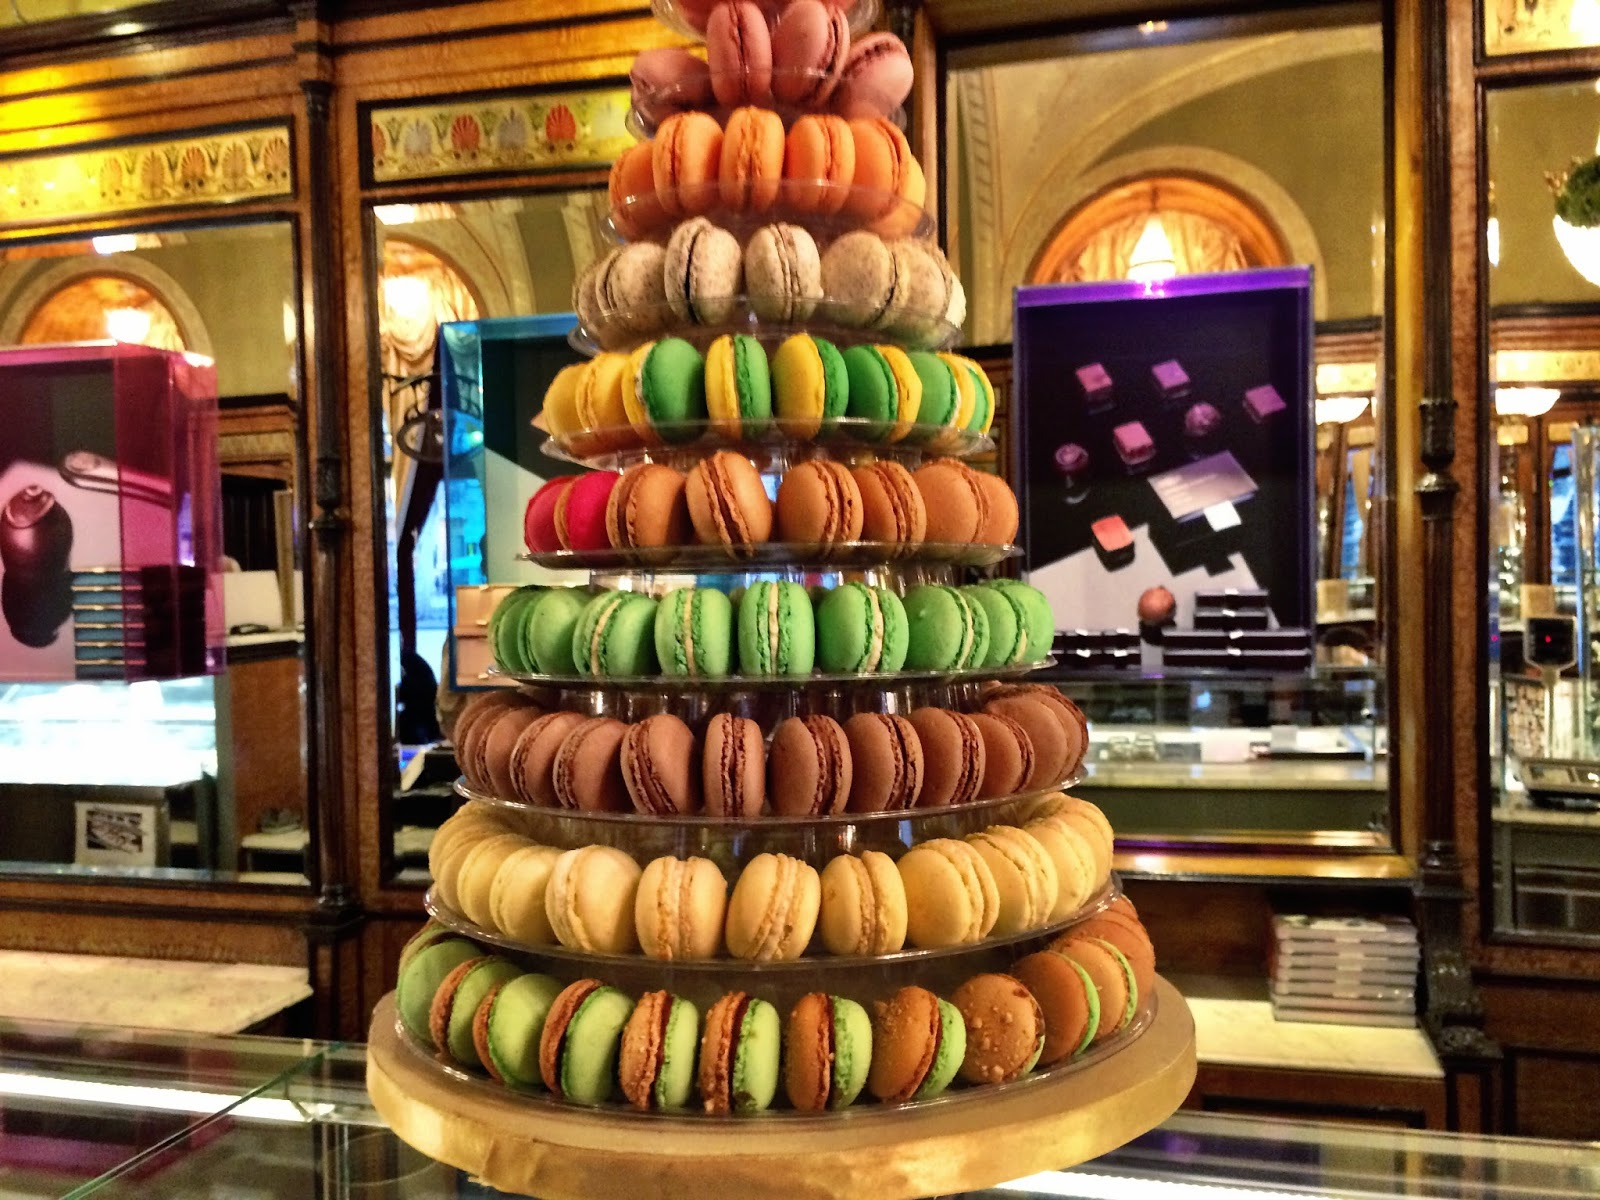 The colourful macaroon tower in Cafe Gerbeaud, Budapest